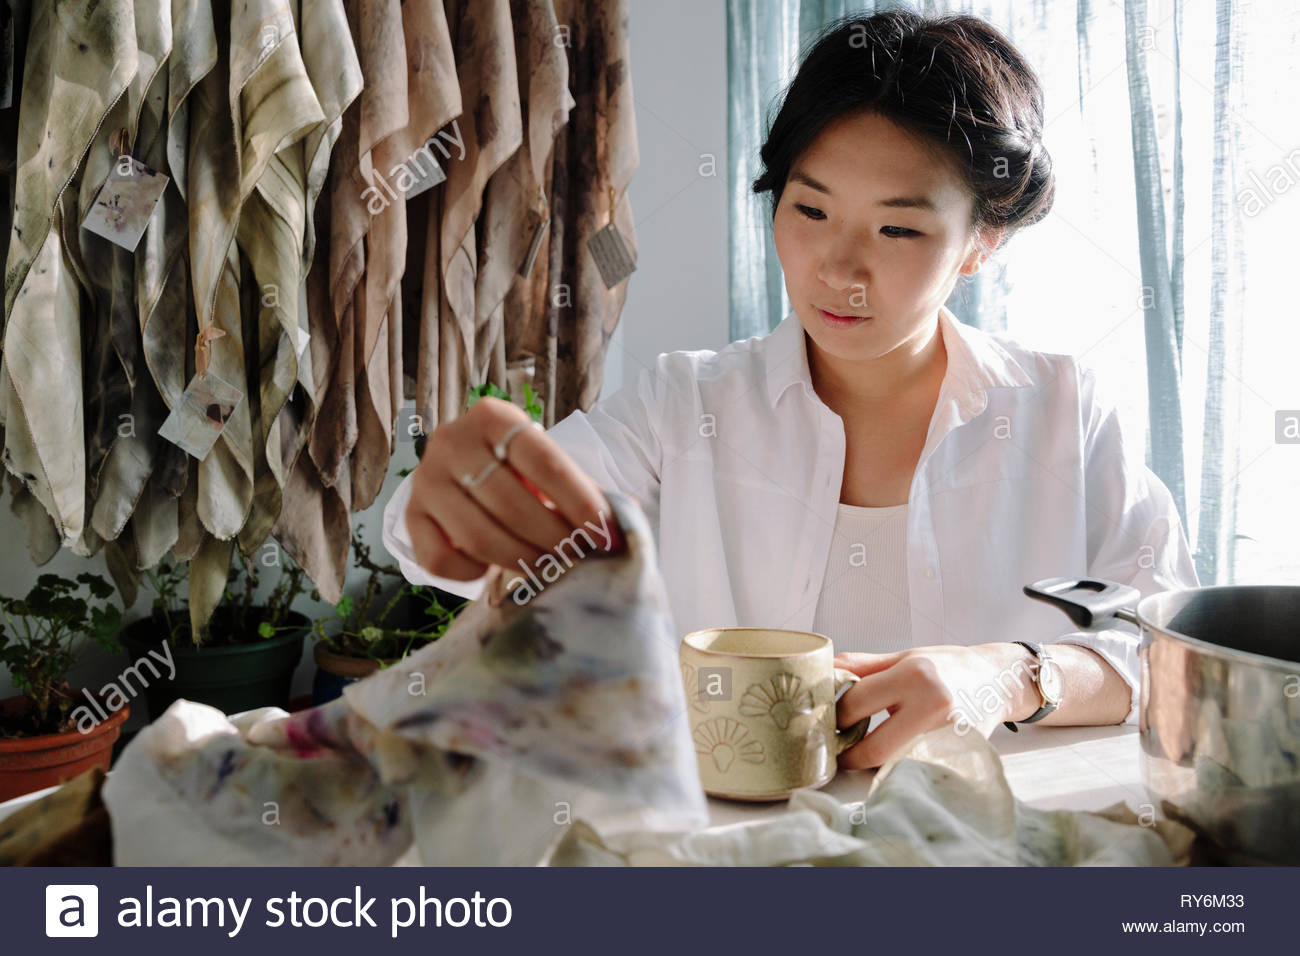 Female artist dyeing clothing with dried flowers at table - Stock Image